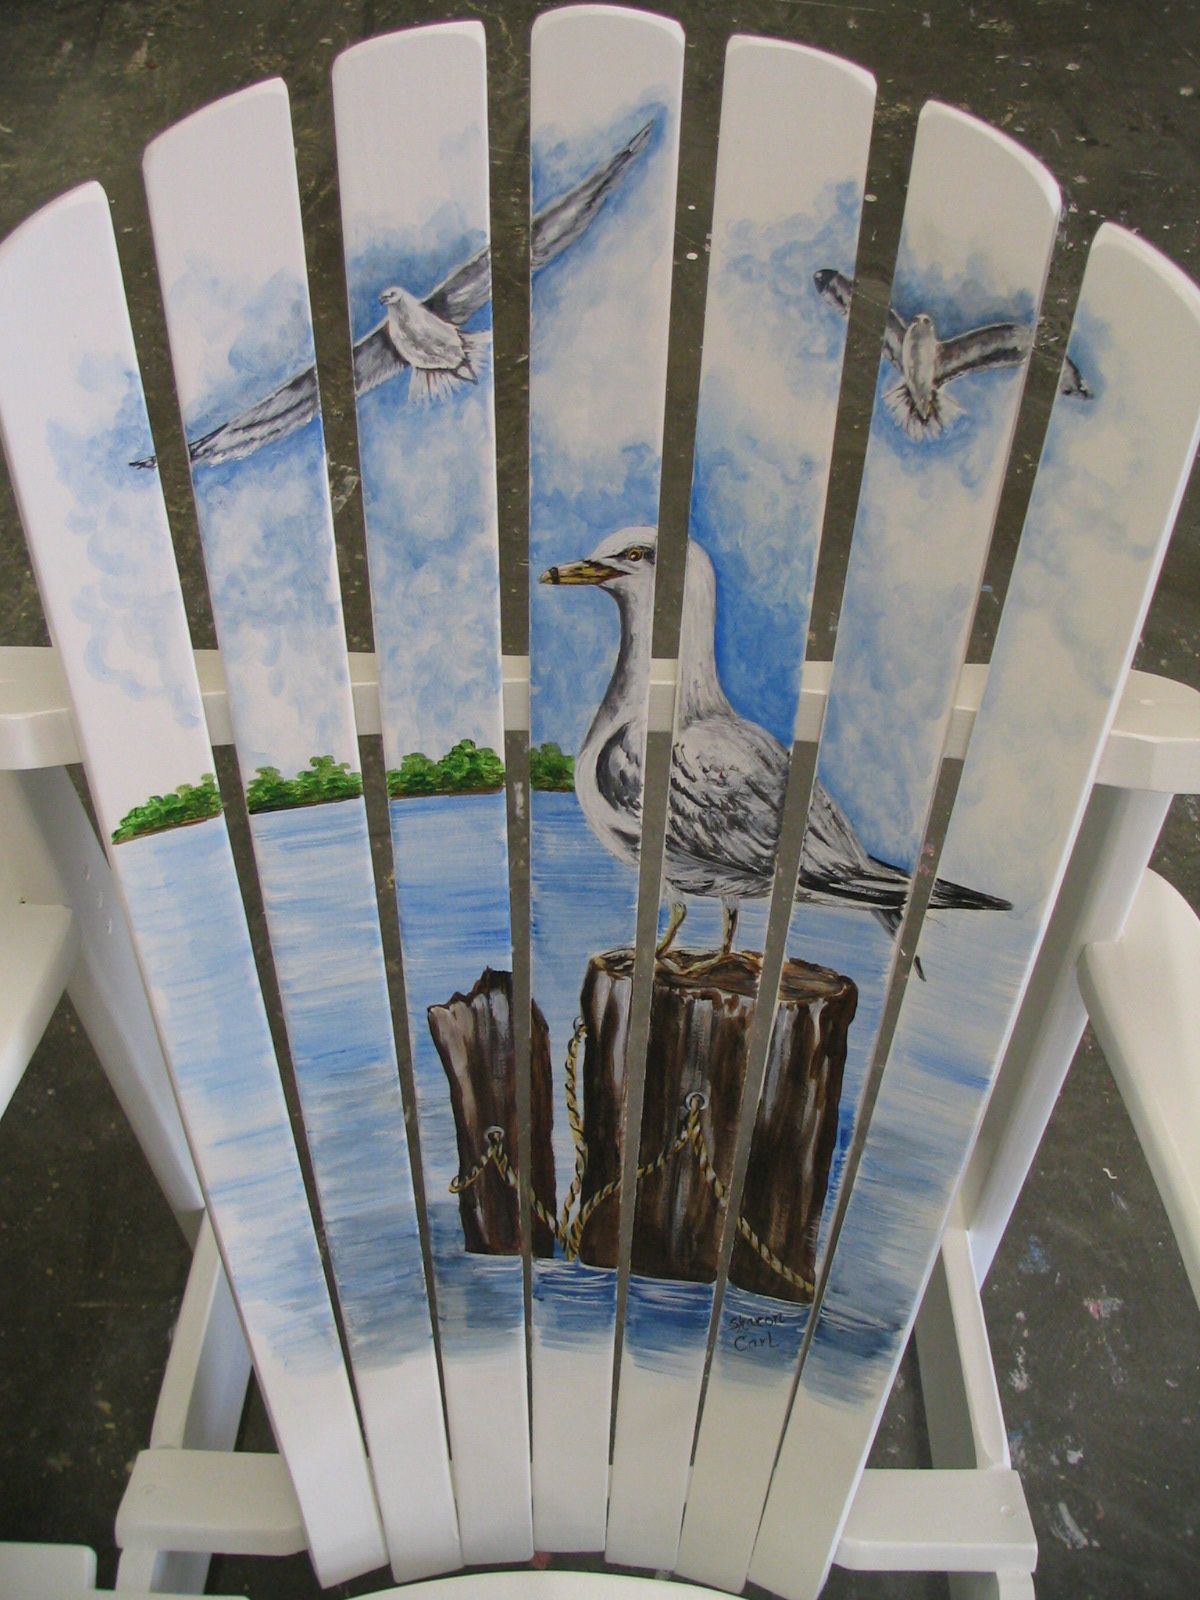 ideas for painting adirondack chairs big joe bean bag chair painted with seagulls on a pier the